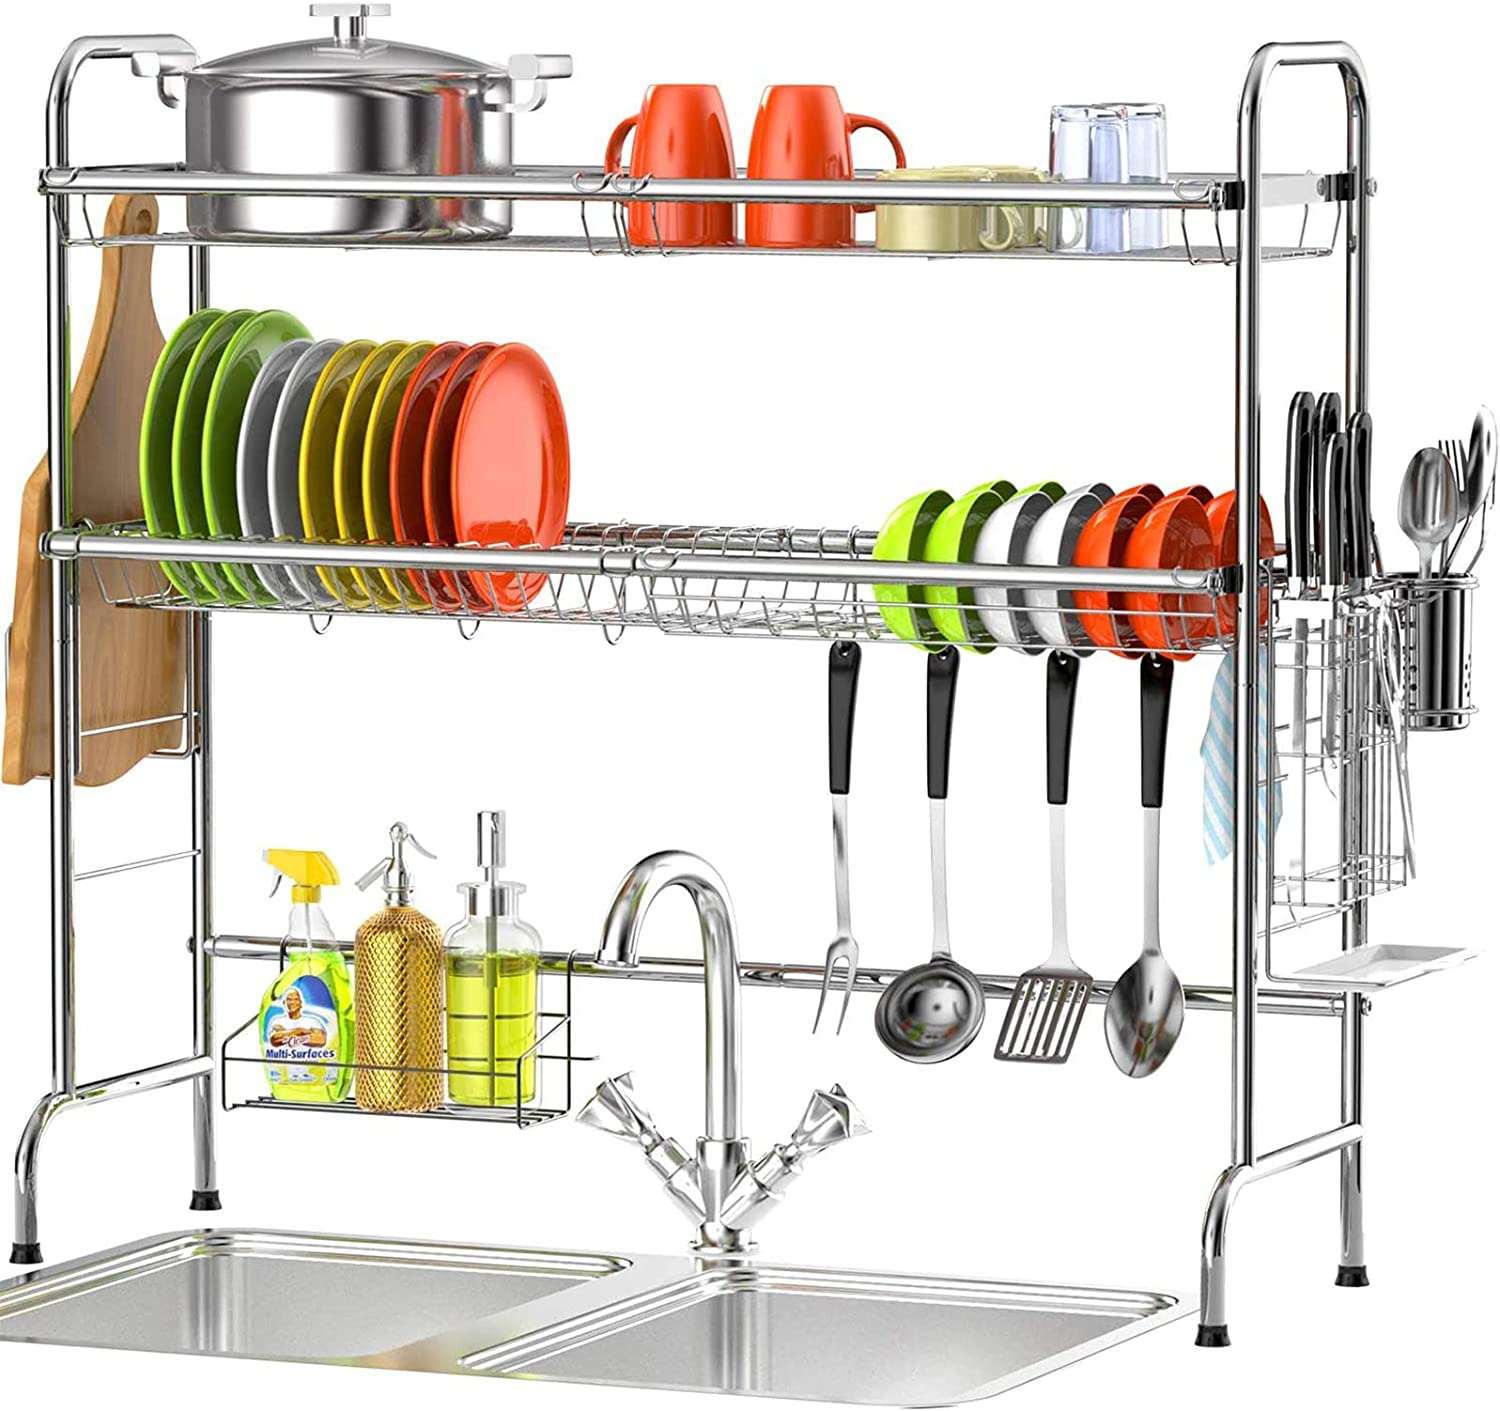 Ace Teah Dish Rack 2 Tier Above Sink Dish Drying Rack with Utensil Holder Hooks Over The Sink Dish Drying Rack Black